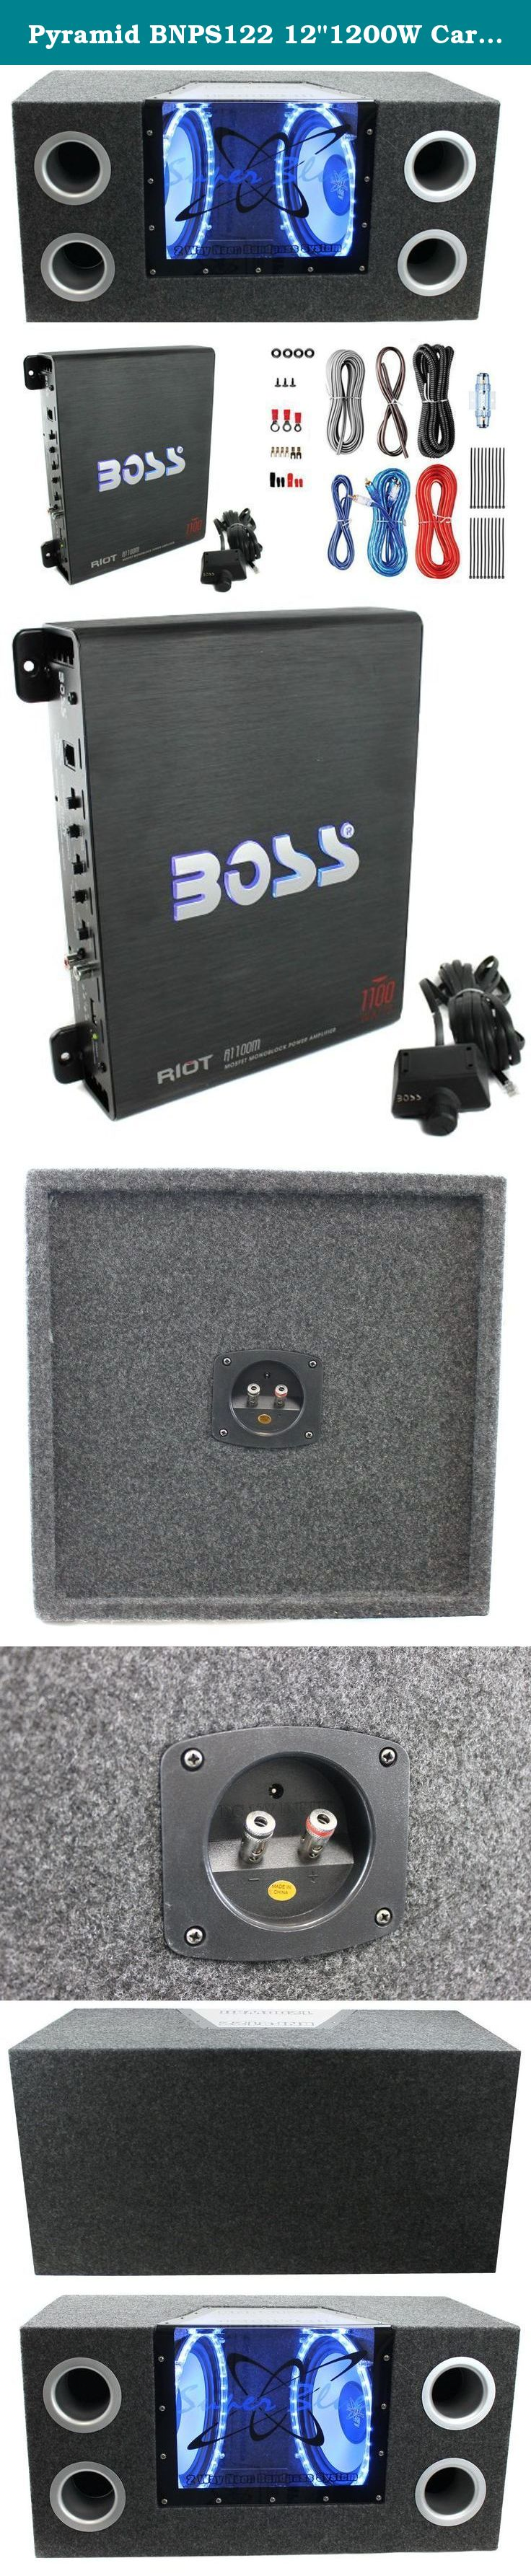 Pyramid Bnps122 121200w Car Audio Subwoofer Box 1100w Mono Amp Wiring Kits For Cars Kit This Package Includes 1 X 1200 Watt Loaded Enclosure